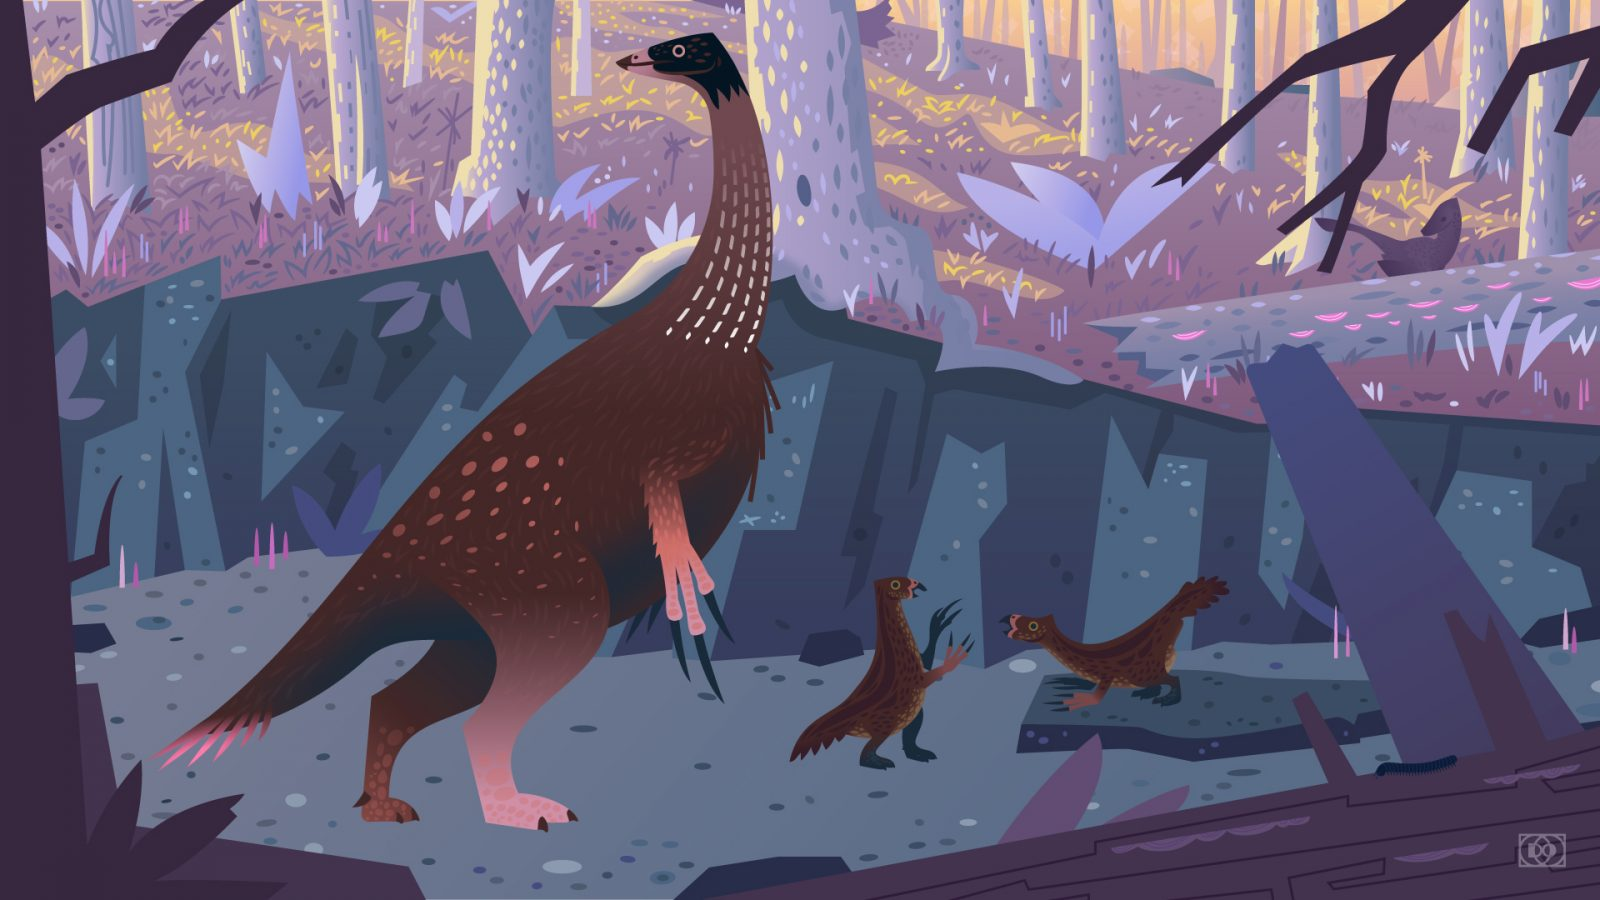 An illustration of a mother Therizinosaurus and her chicks walking through a dry forest creekbed while an Adasaurus watches in the distance.